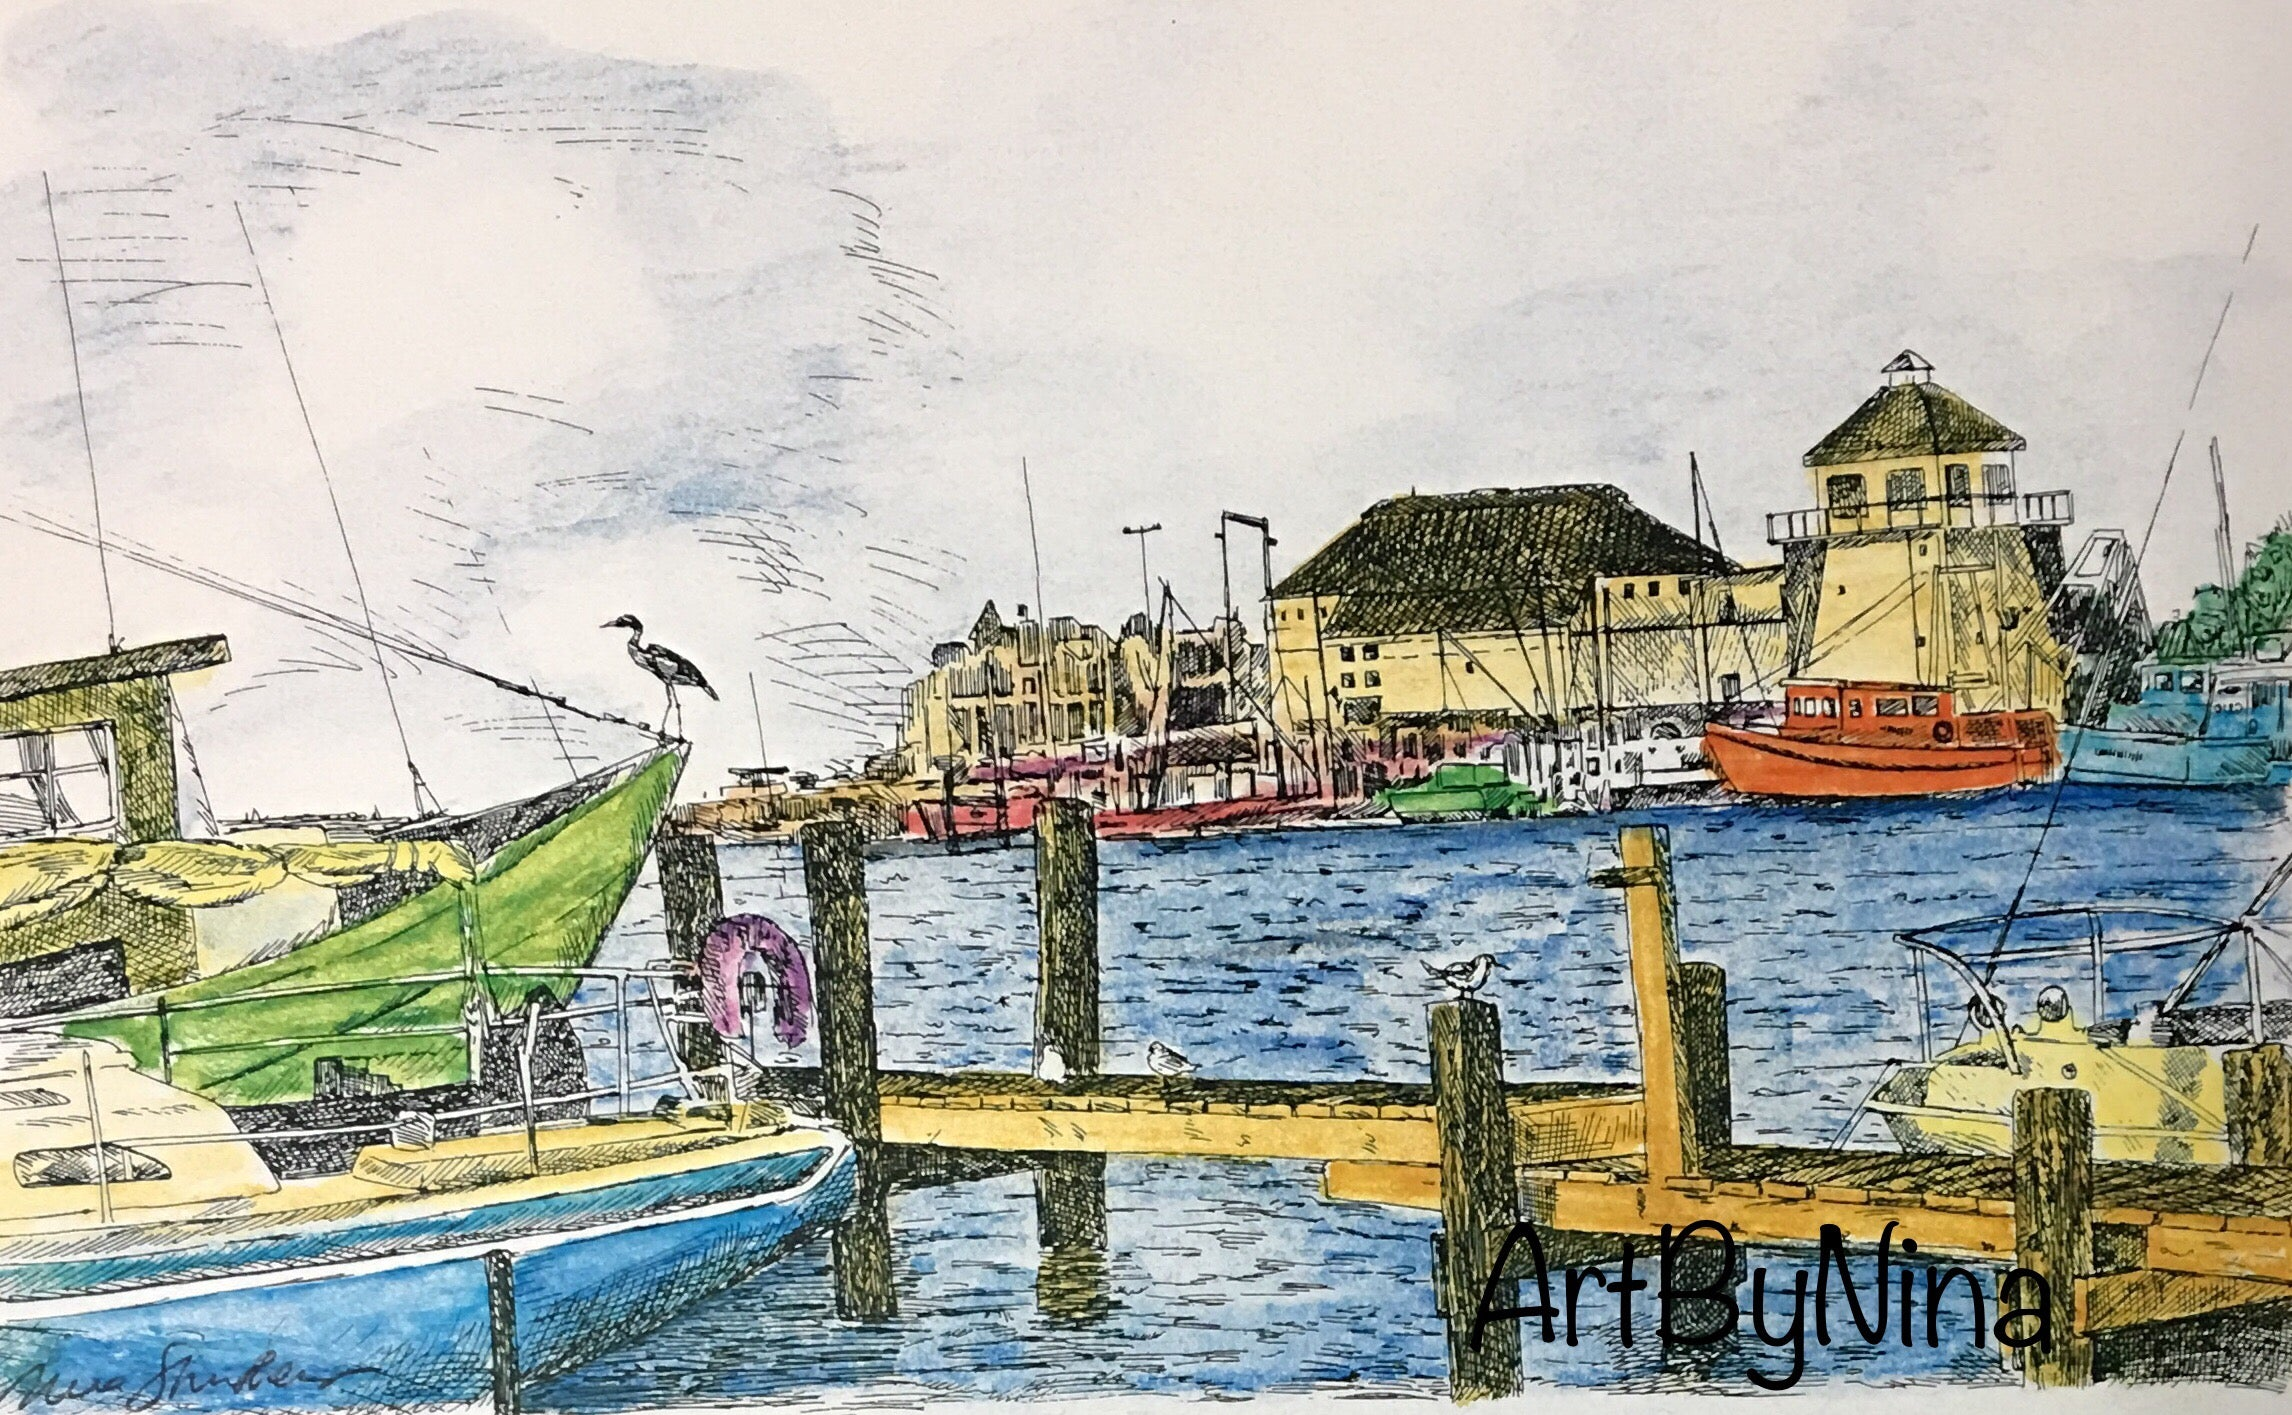 Architecture Print - Rockport #142